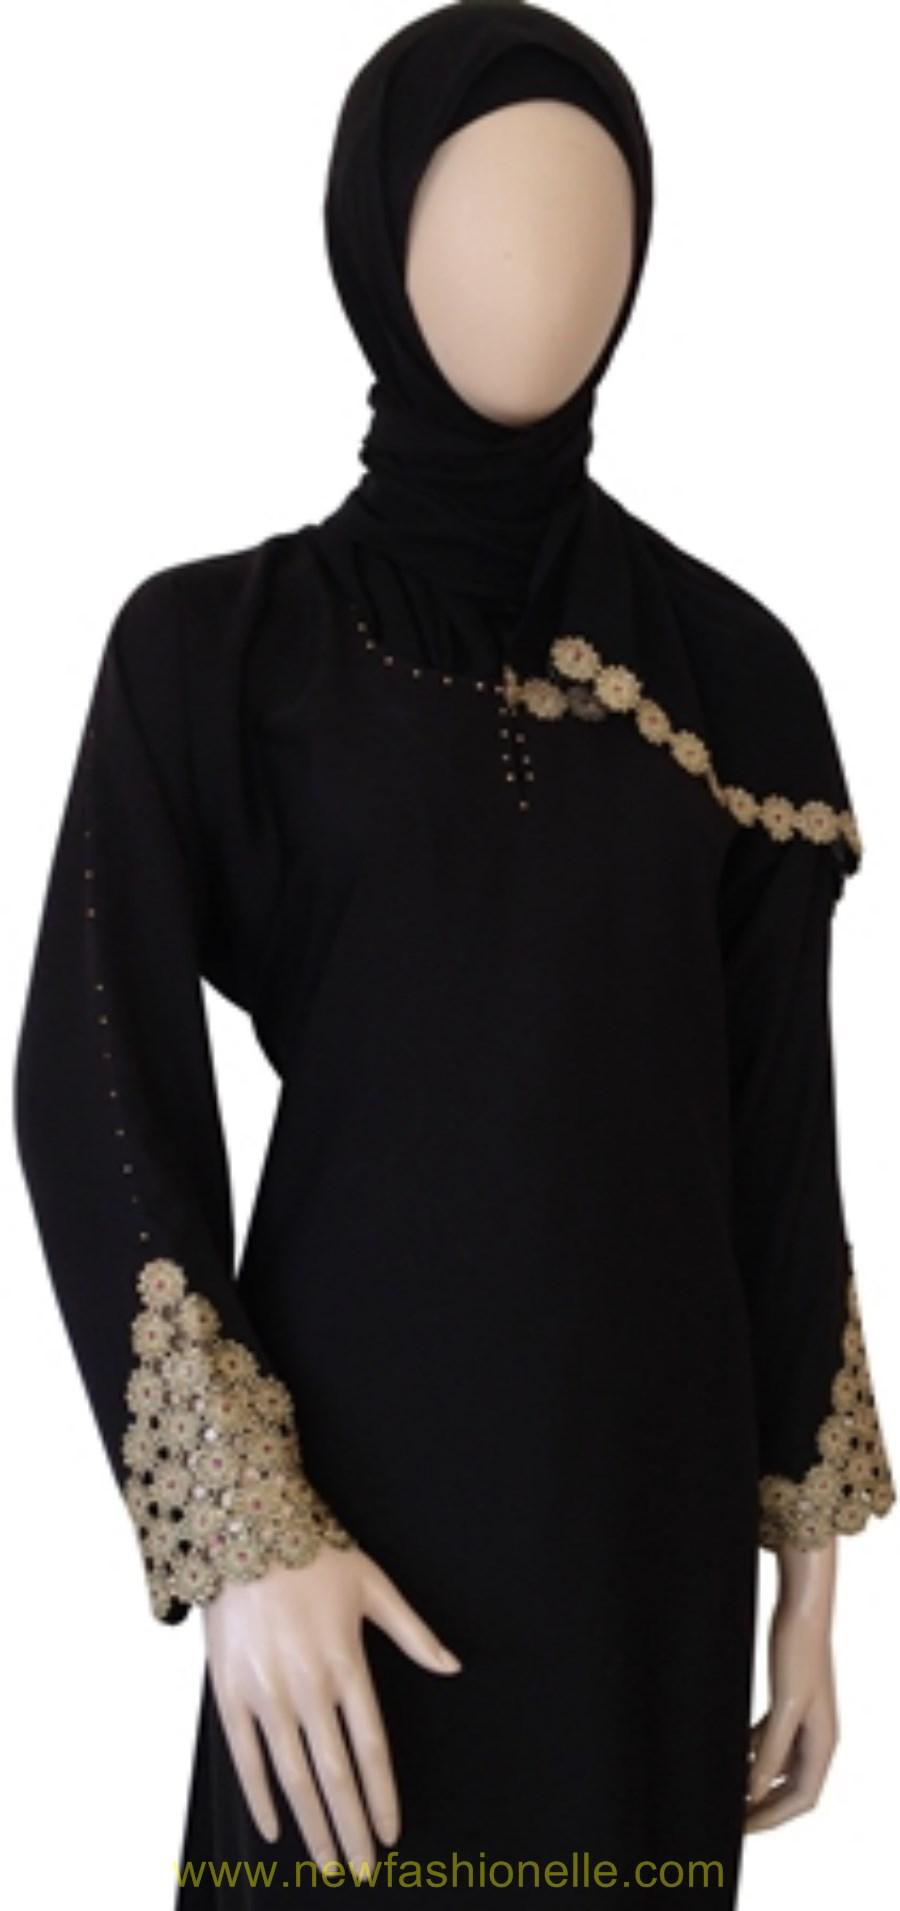 New Front Abaya designs Images